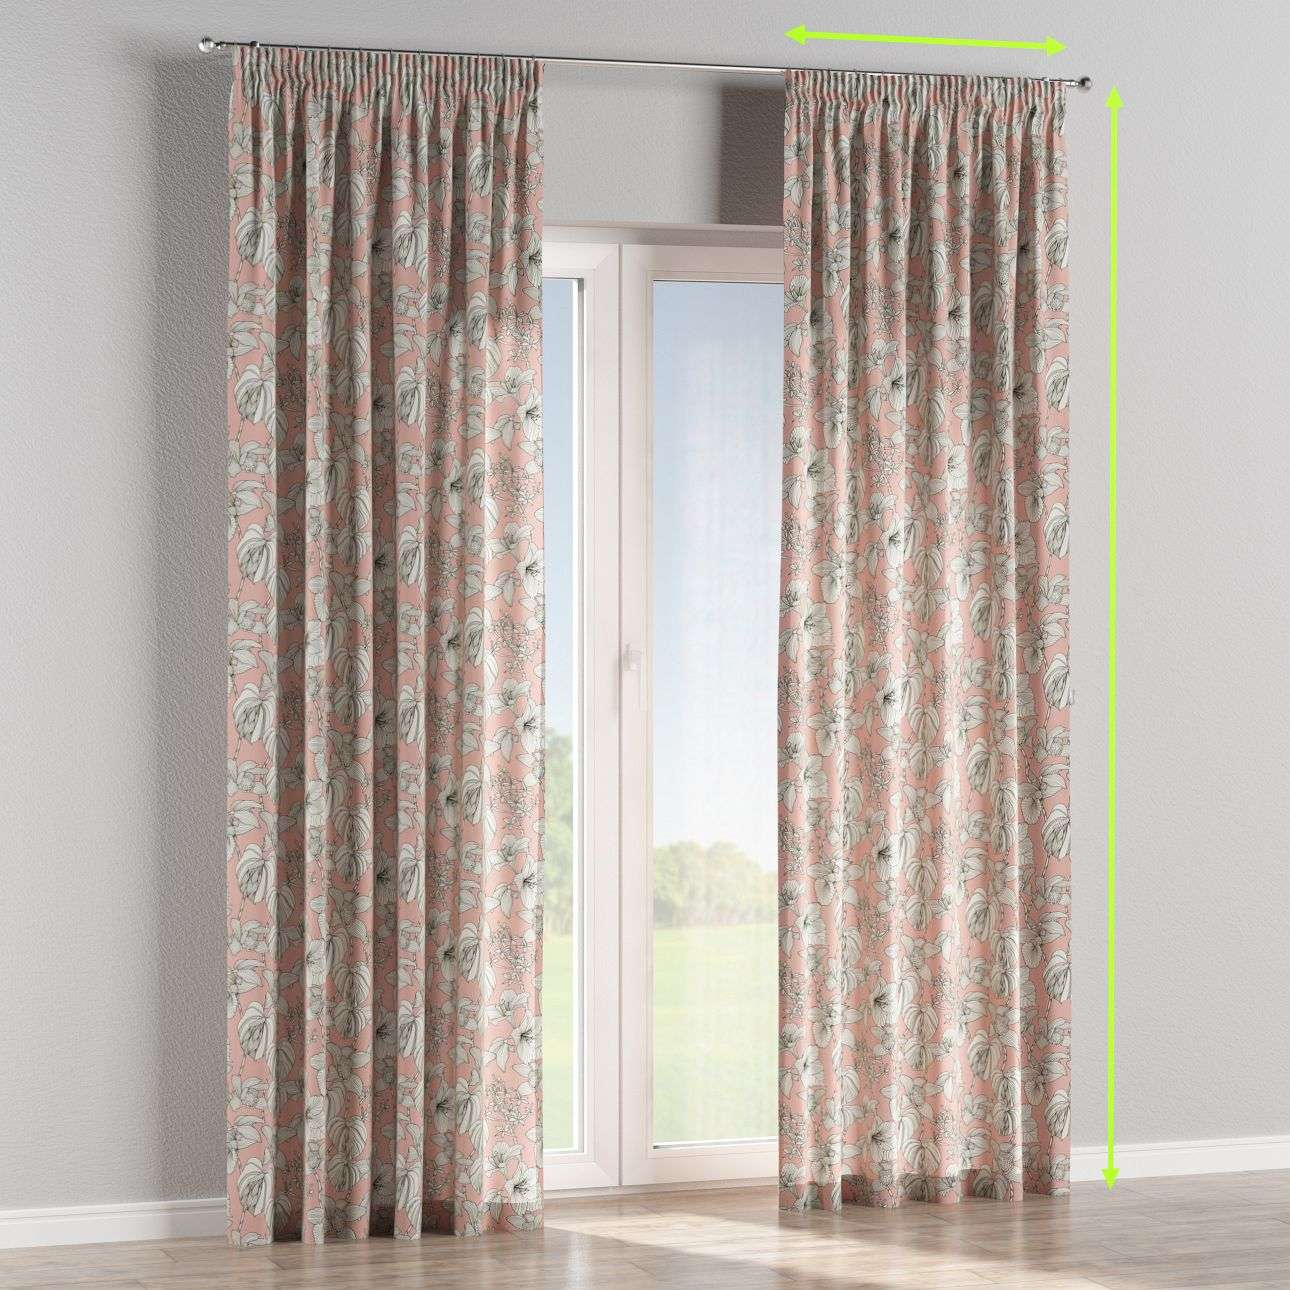 Pencil pleat lined curtains in collection Brooklyn, fabric: 137-74